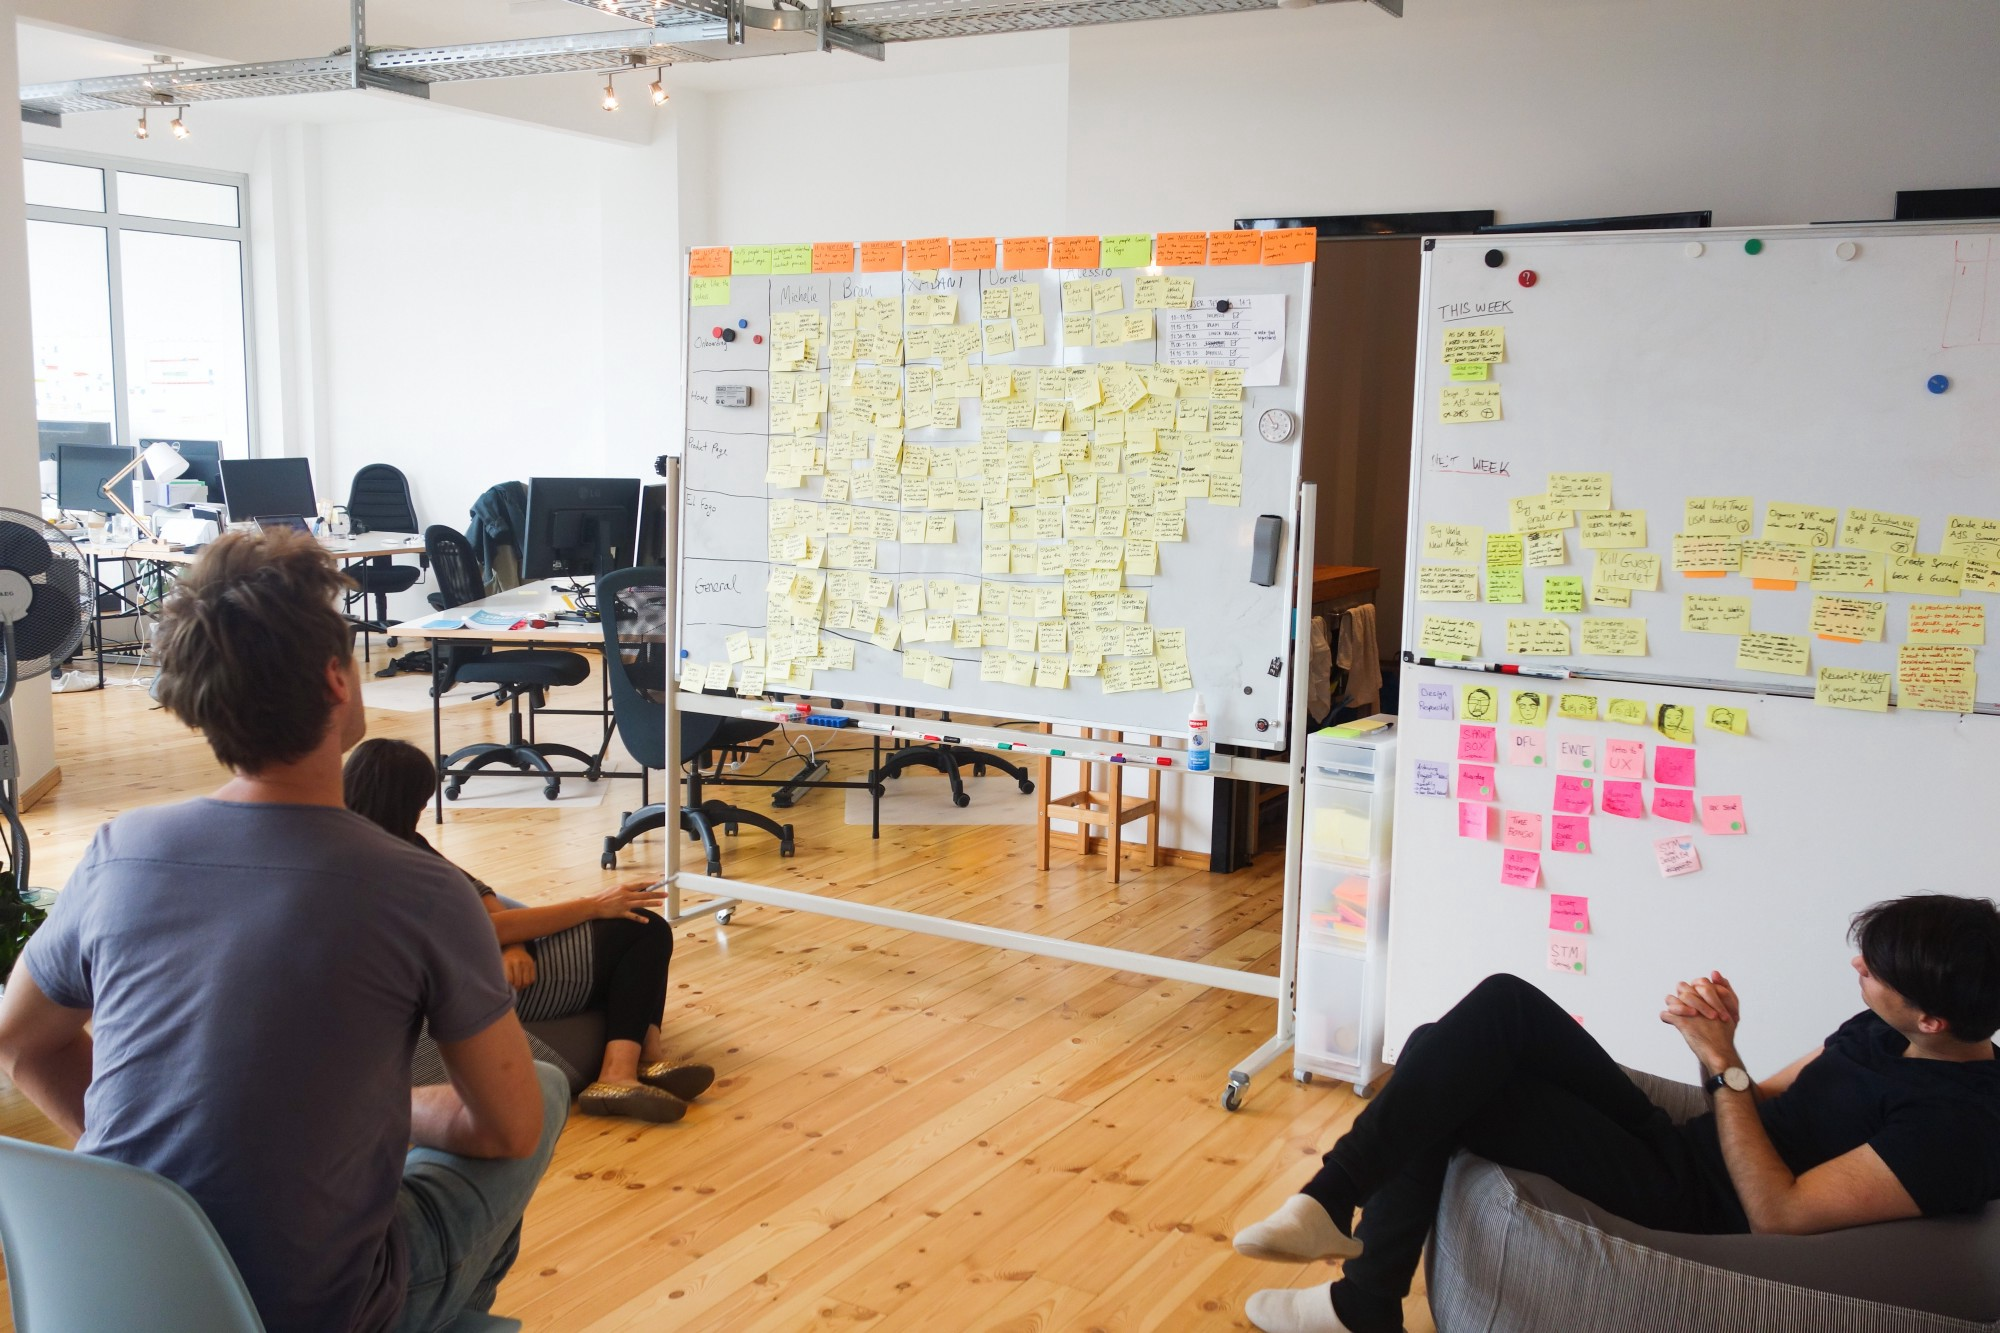 16 UX Design tools from the Sprint Process - UX Planet